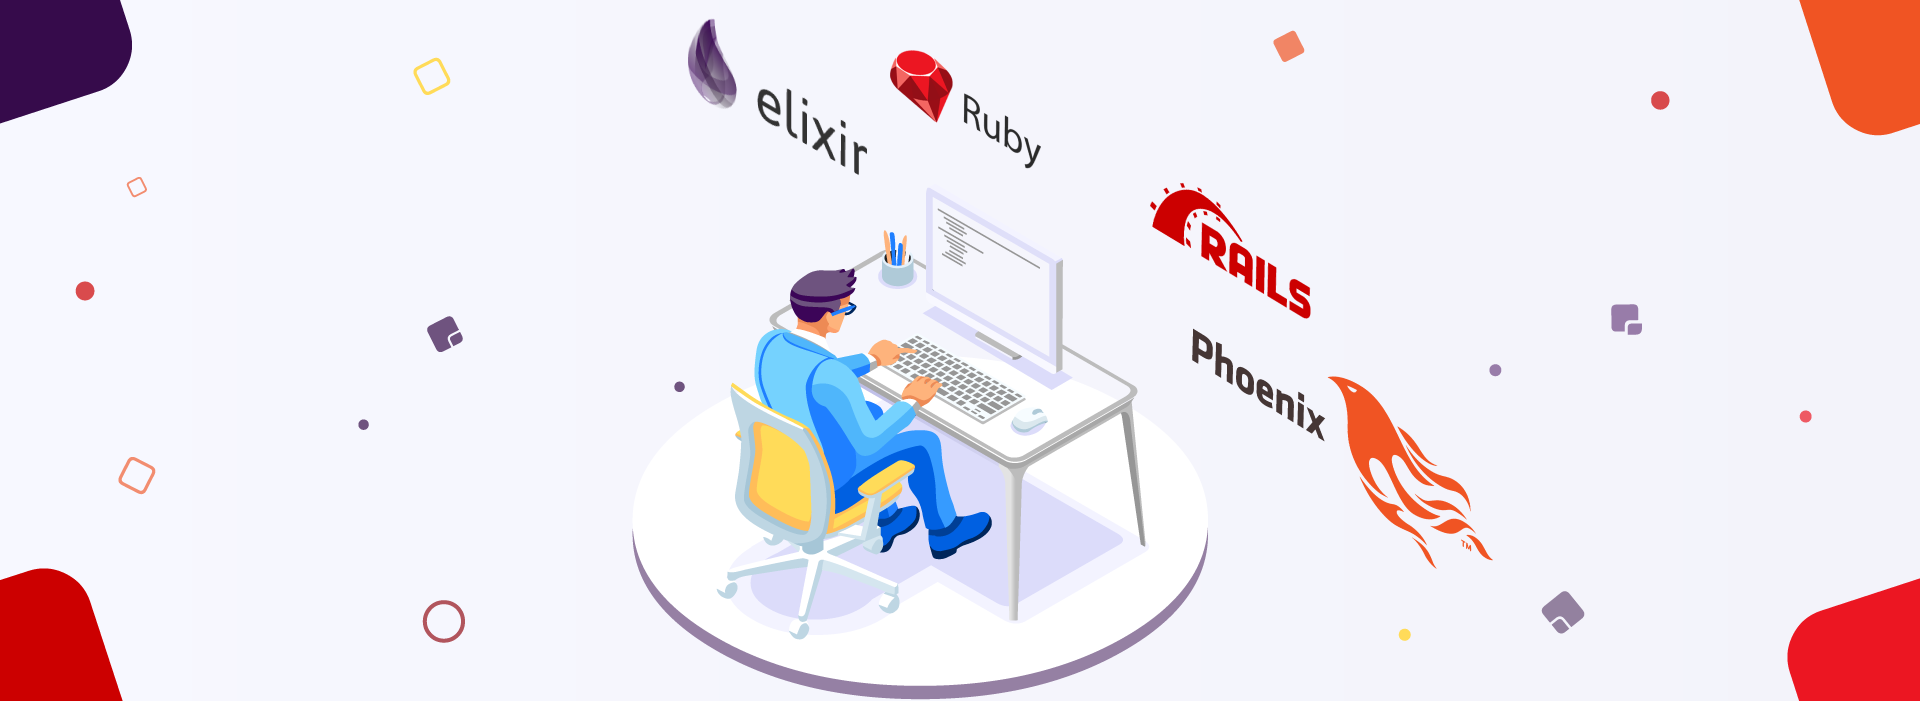 Elixir vs  Ruby and Phoenix vs  Rails: What to Choose and